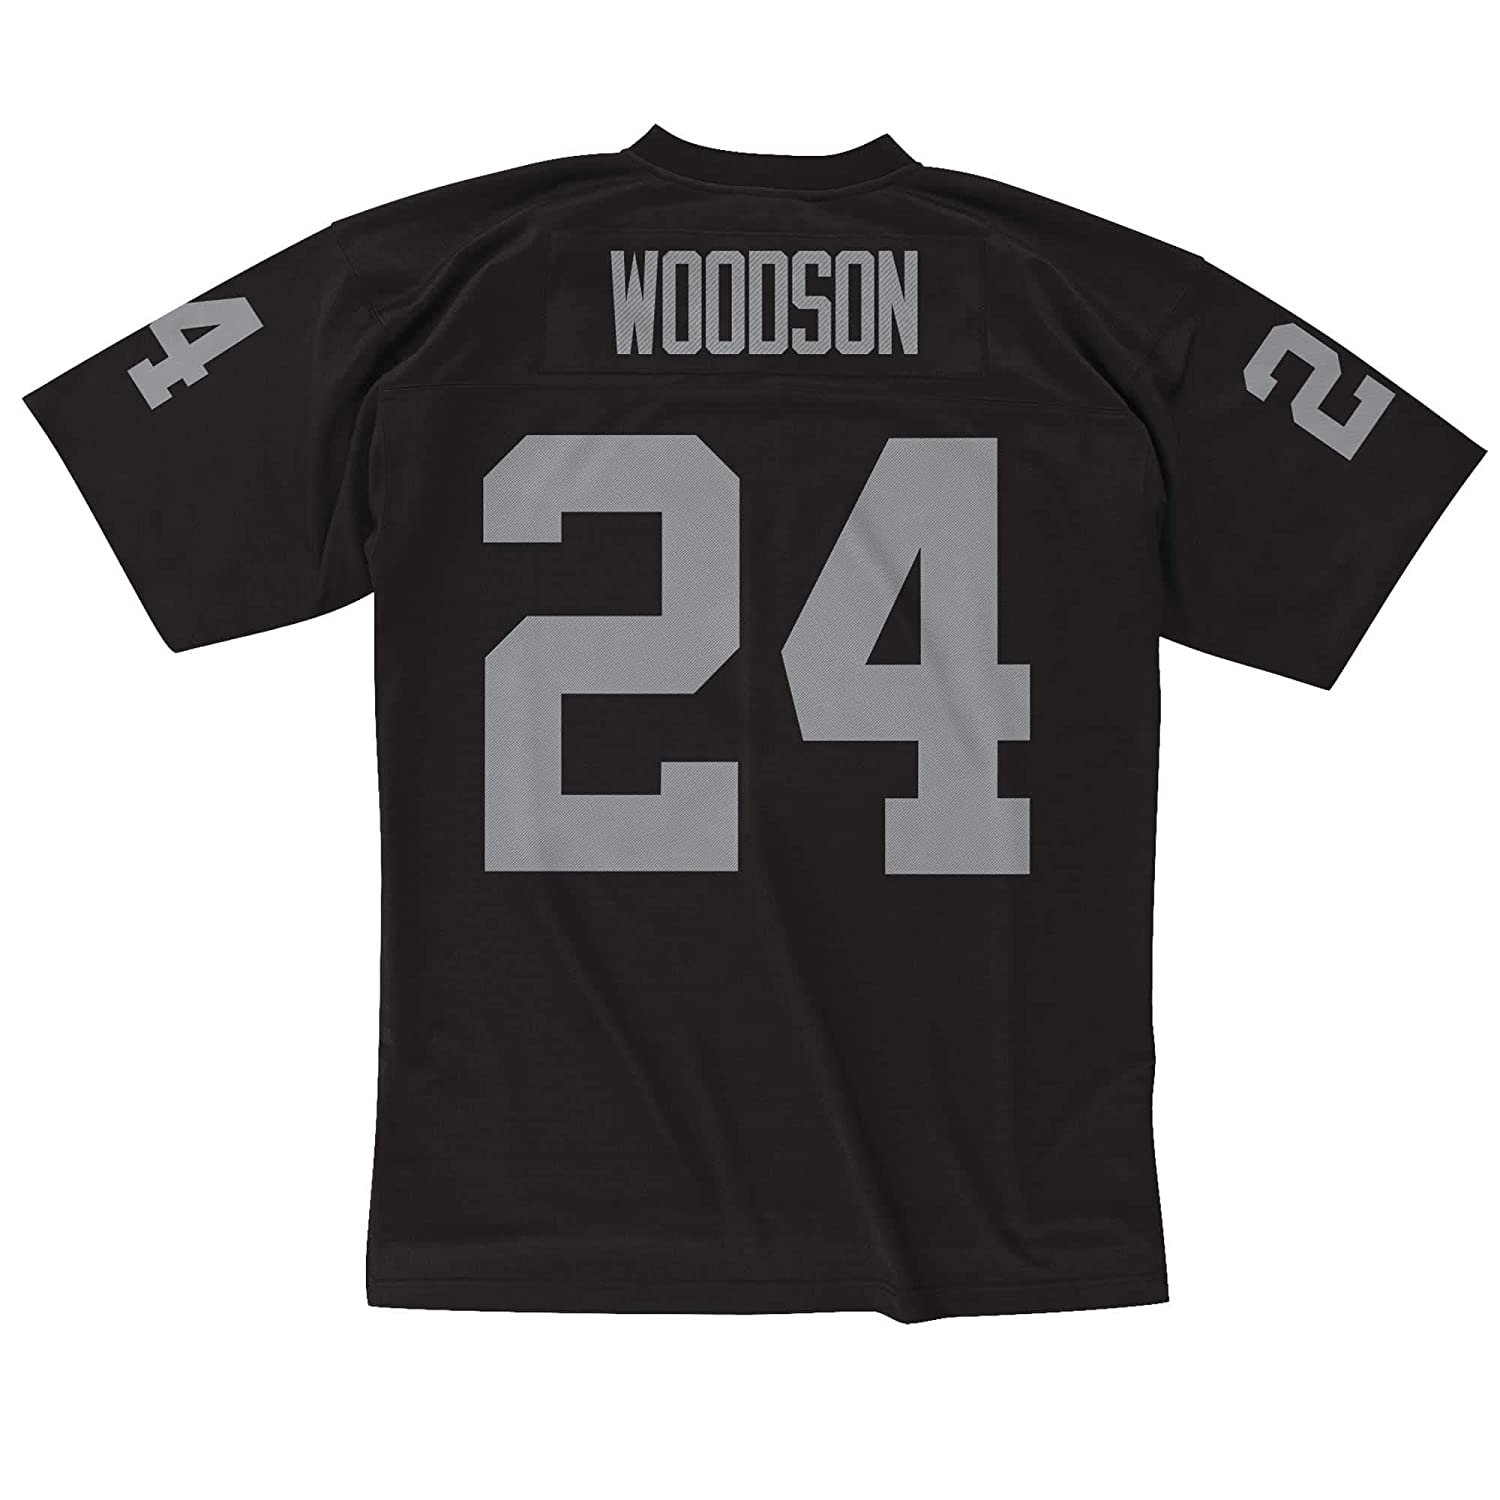 Charles Jersey Charles Woodson Replica Woodson